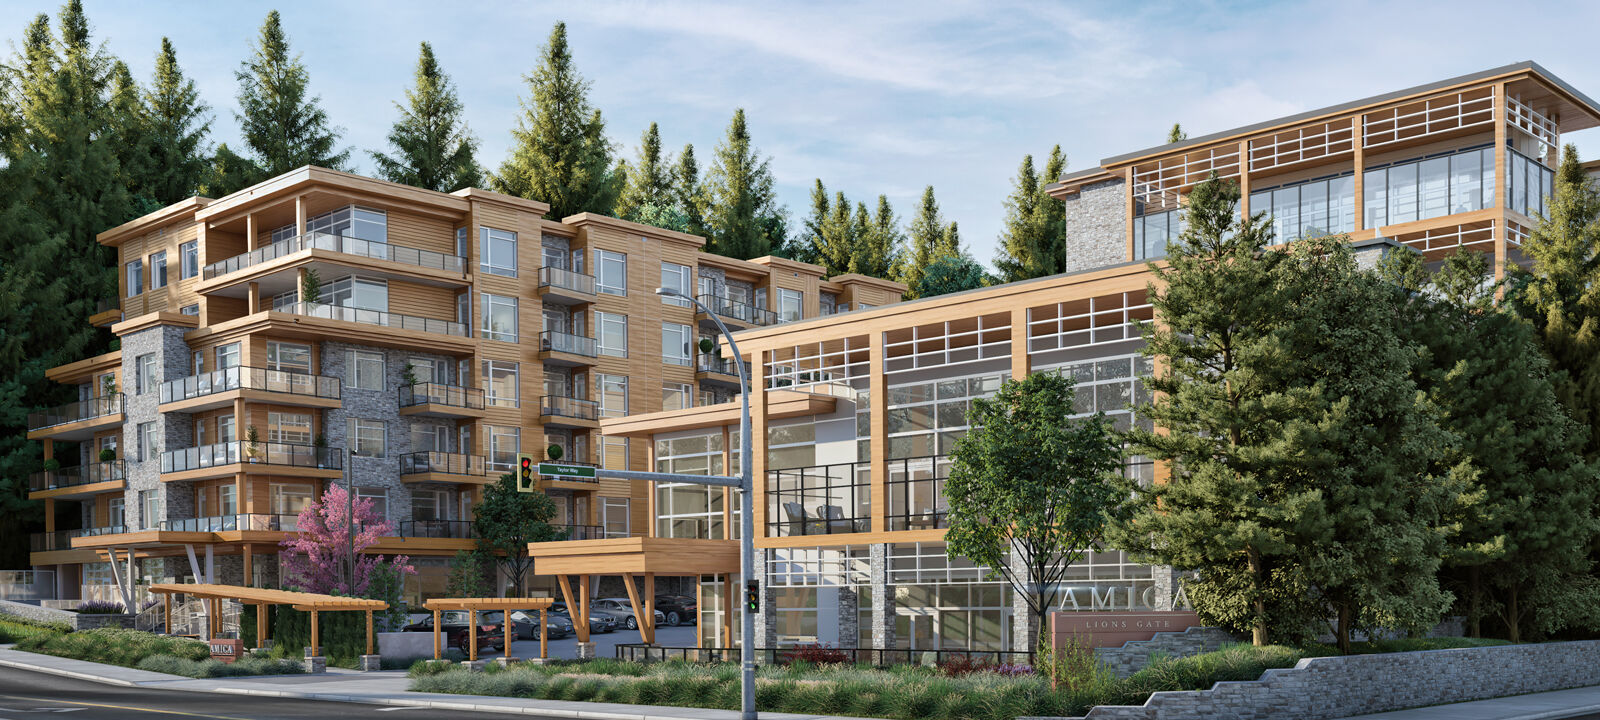 Rendering of the exterior of the Amica Lions Gate expansion project.